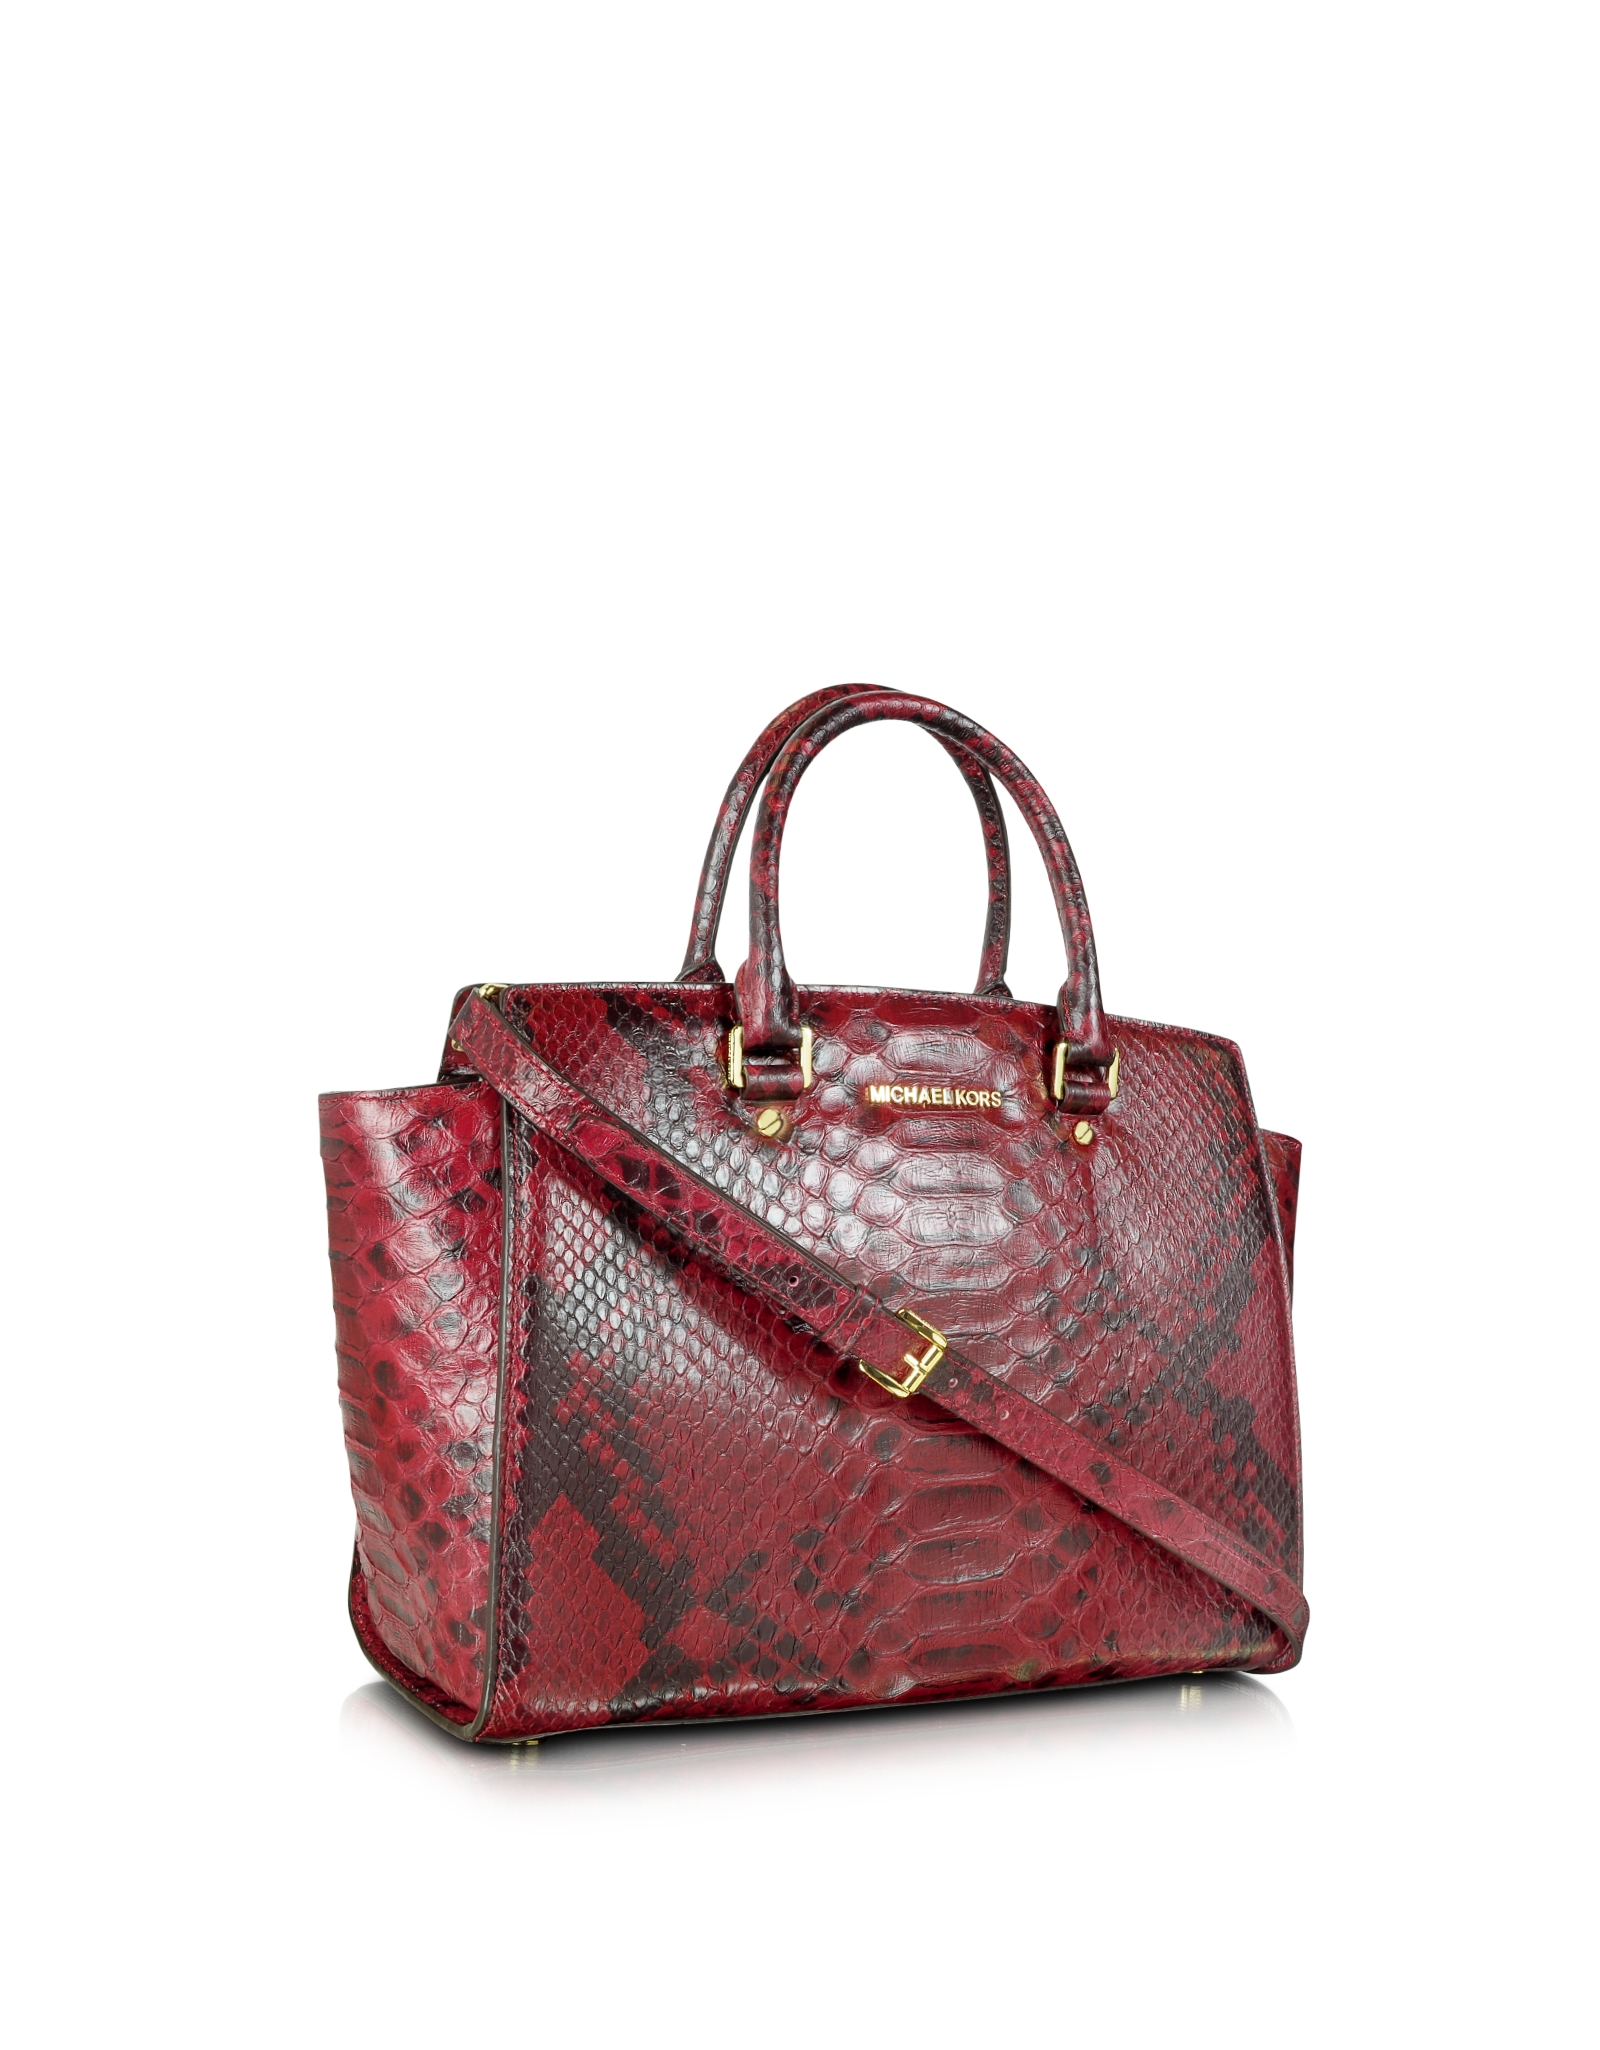 chloe knockoff handbags - Michael kors Selma Large Top Zip Anaconda Satchel Cinnabar in Red ...